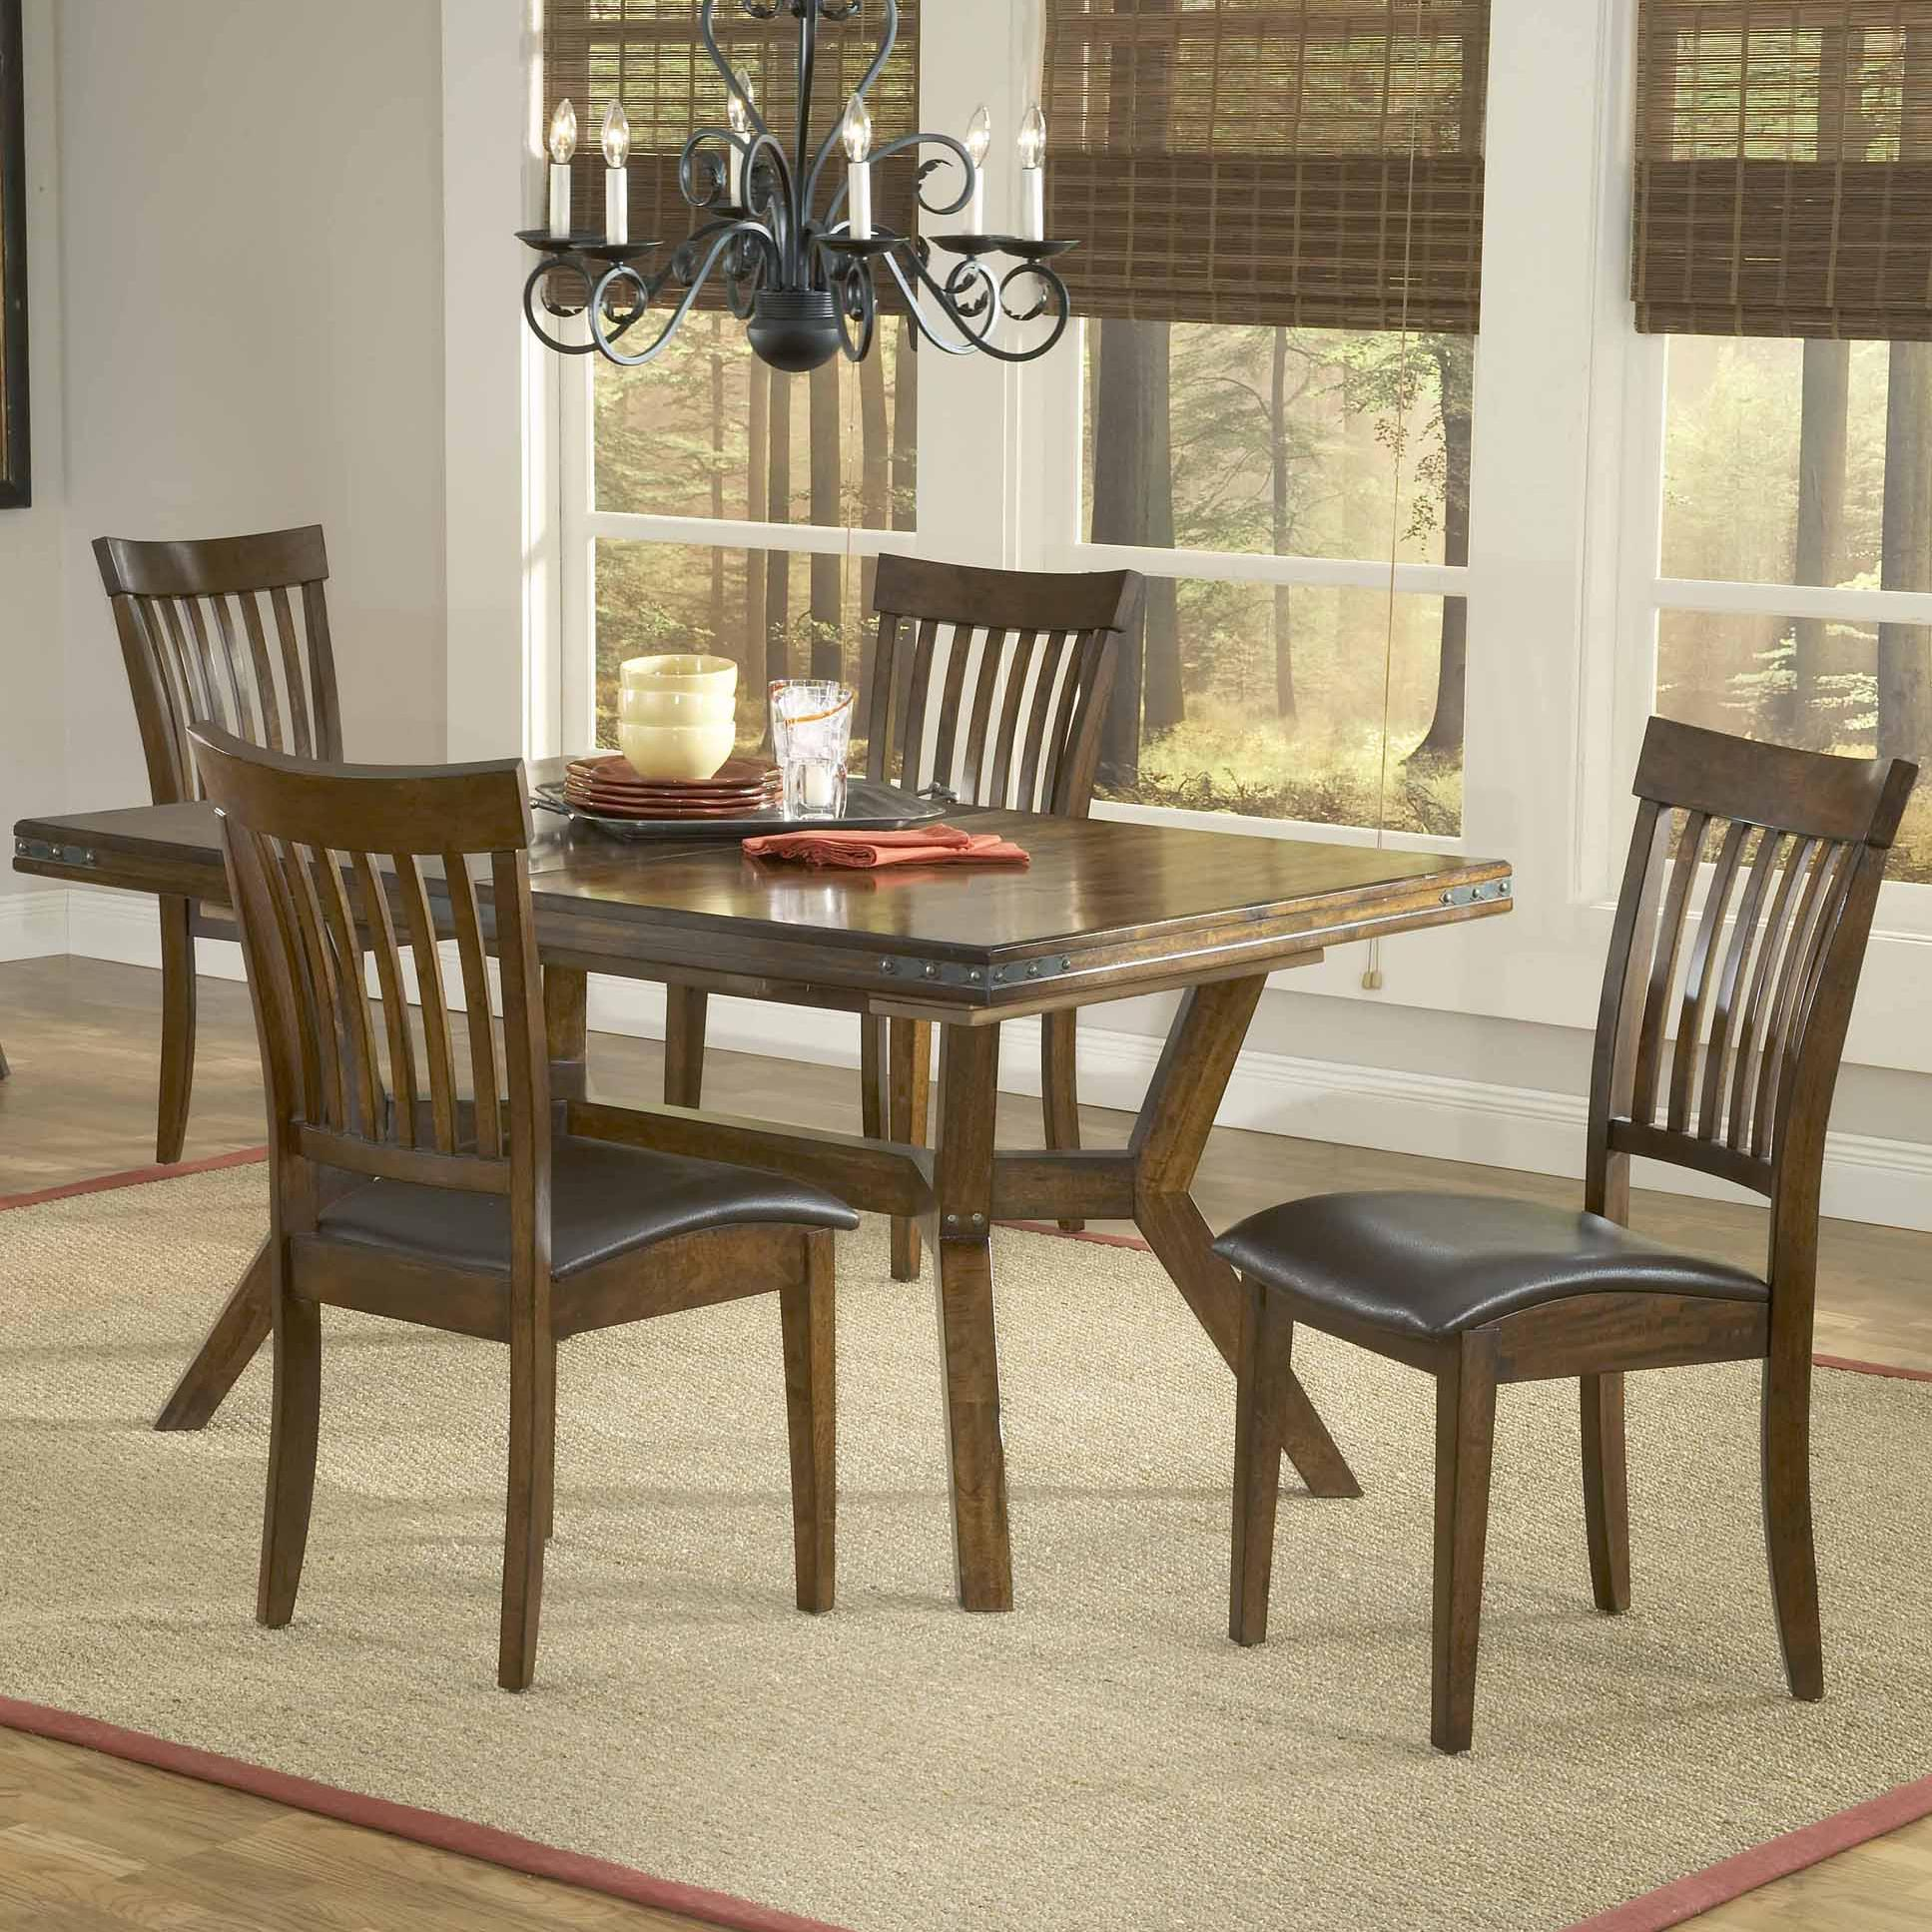 Hillsdale Arbor Hill 5 Piece Rectangular Dining Table Set - Item Number: 4232DTBC